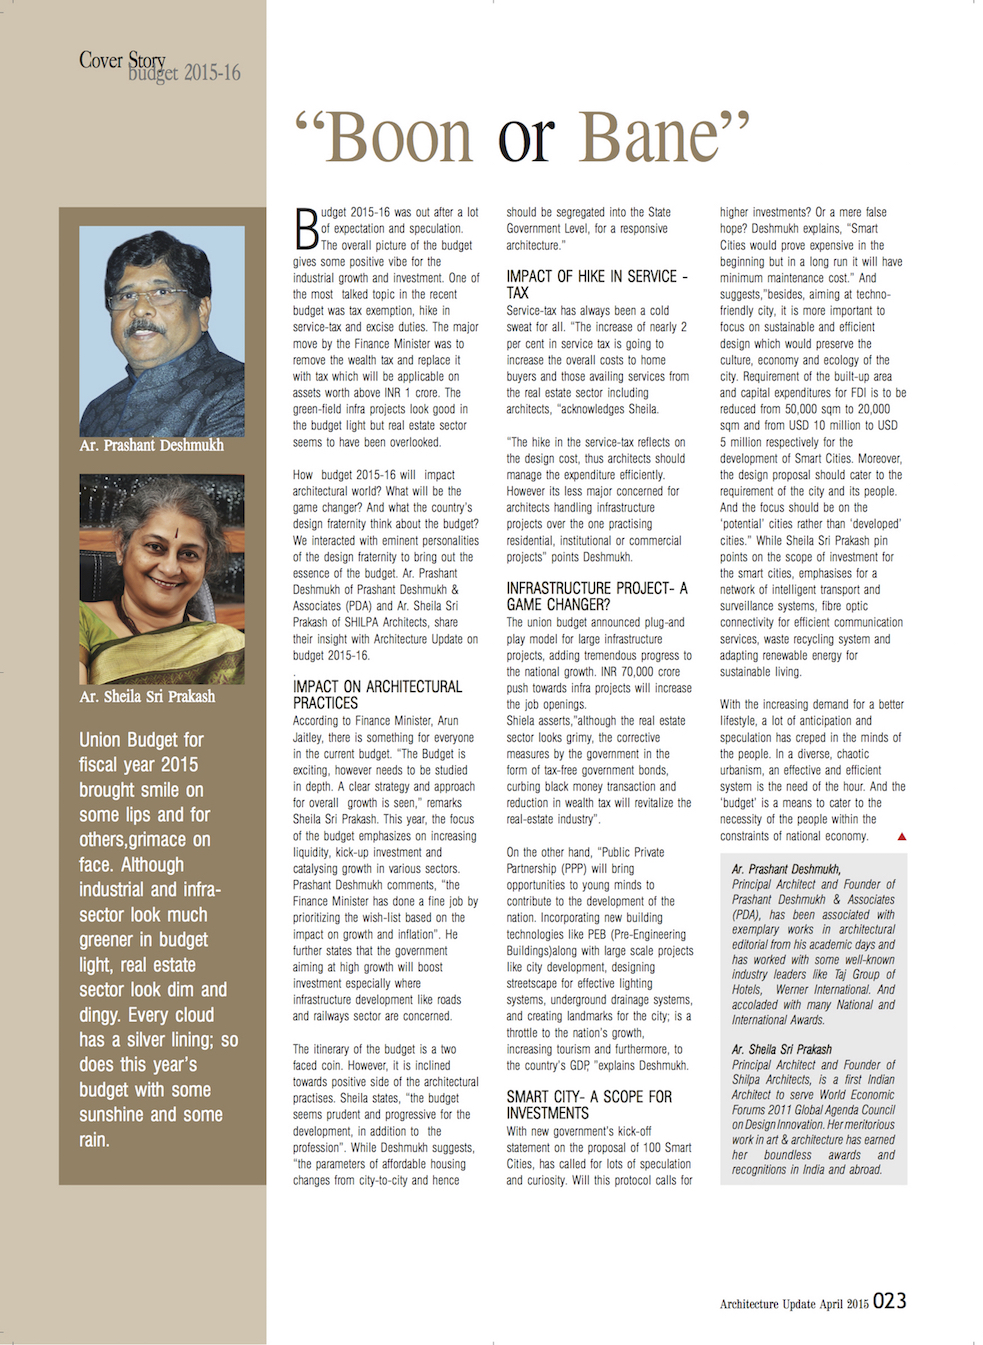 Architecture Update Magazine with Sheila Sri Prakash